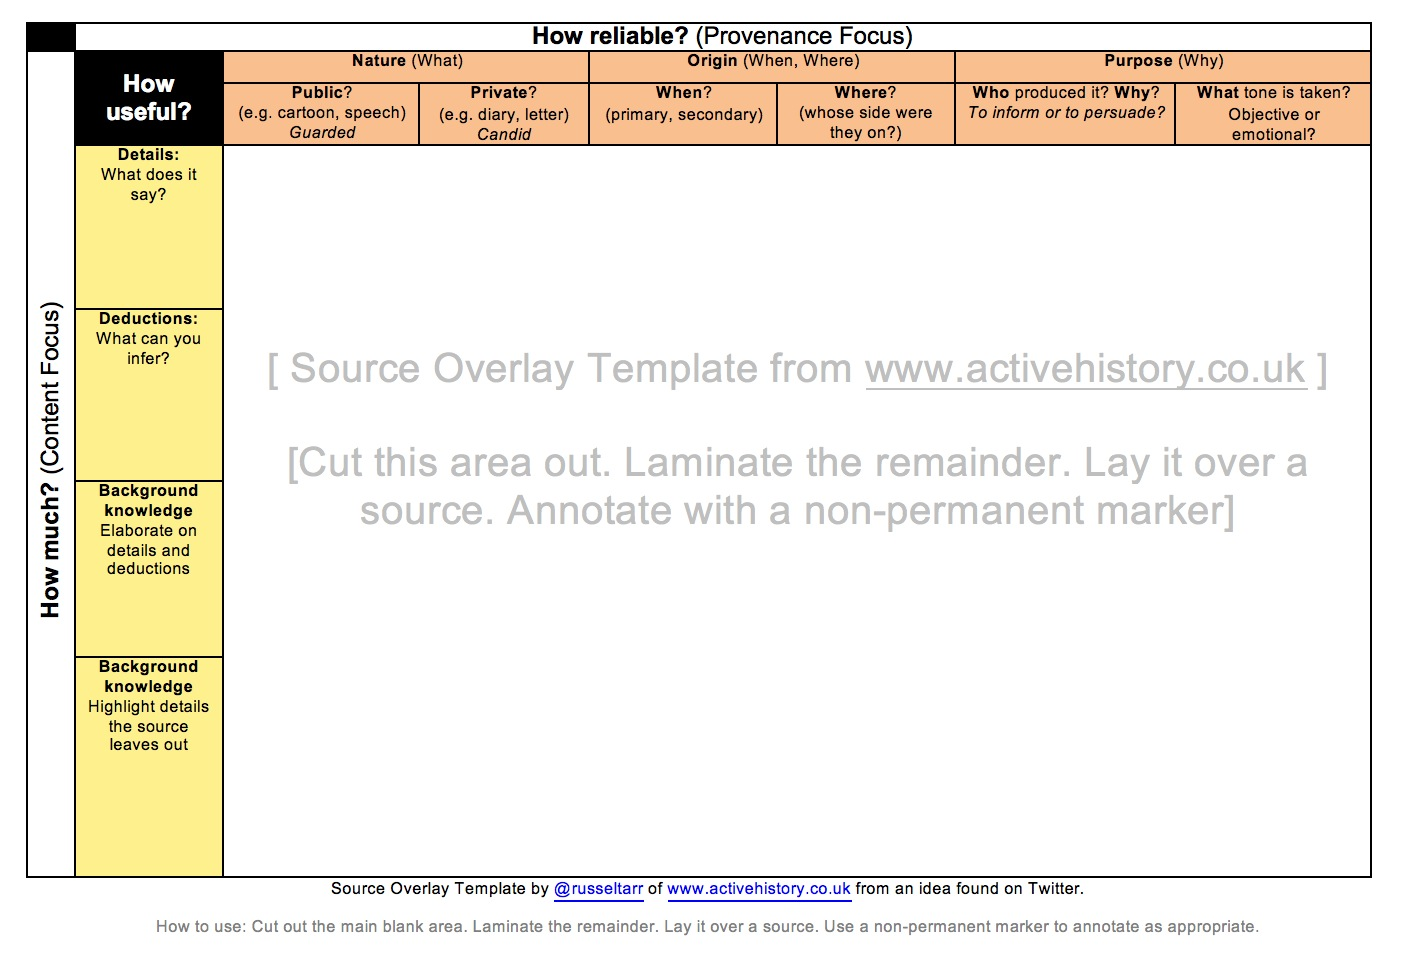 Source Evaluation Overlay Template